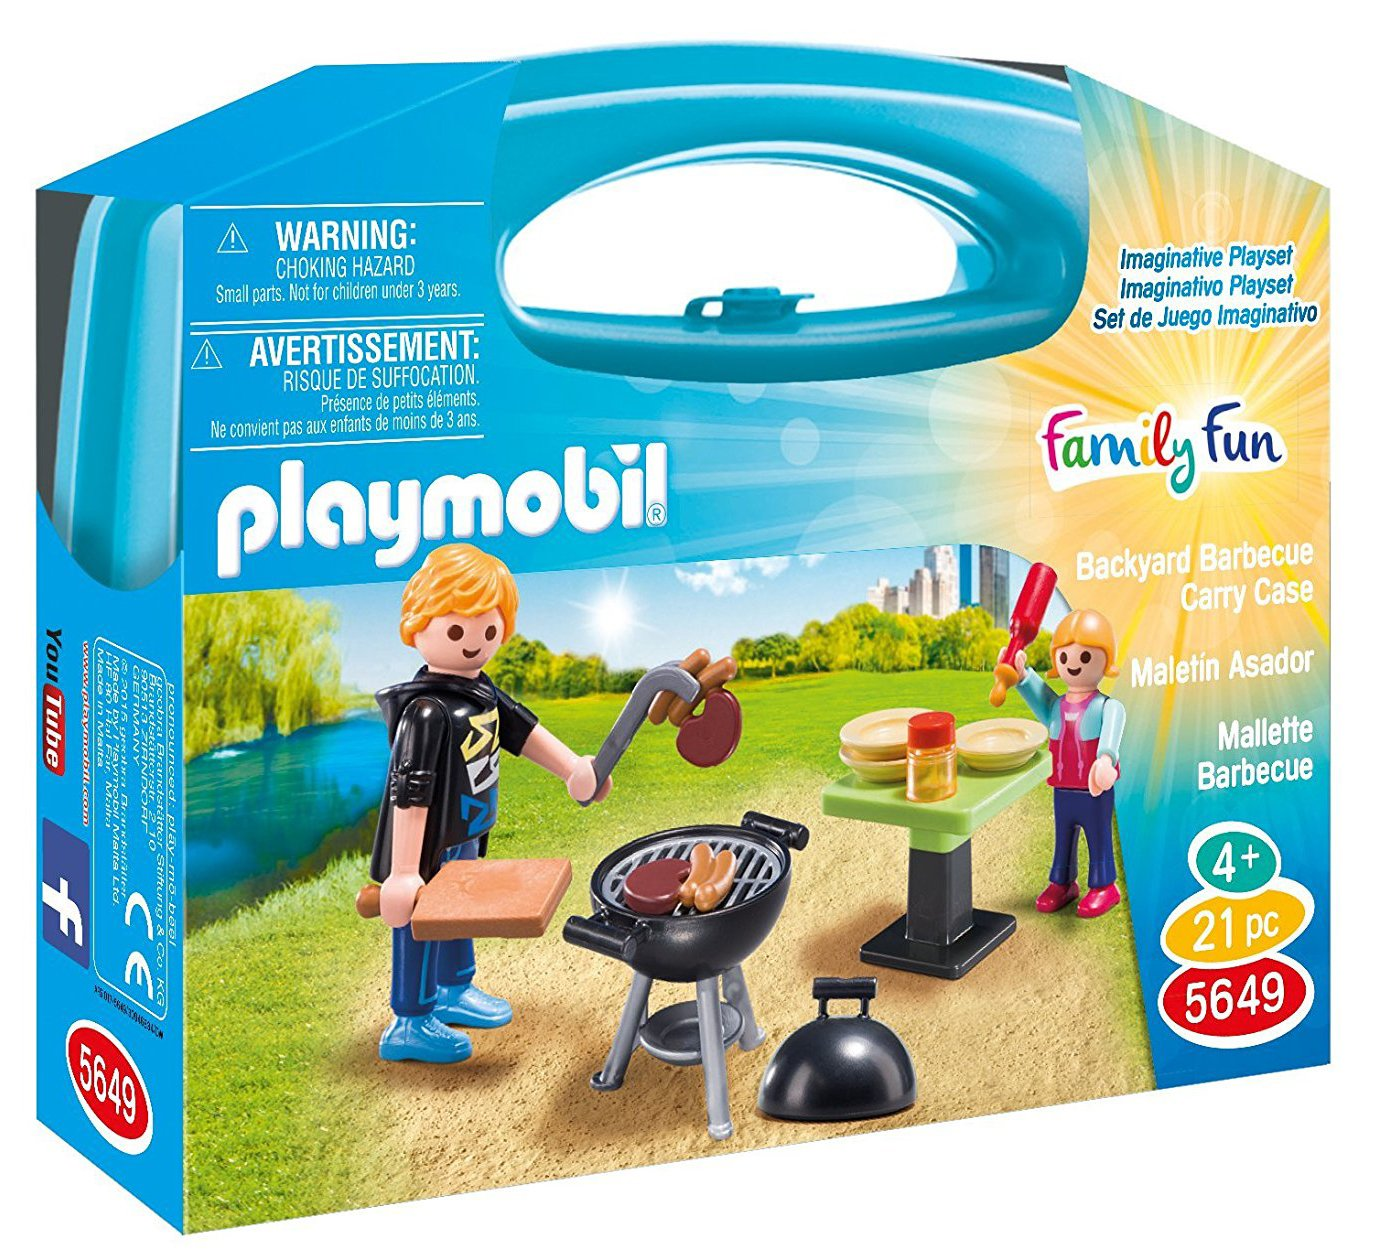 PLAYMOBIL Backyard Barbecue Carry Case Playmobil - Cranbury 5649